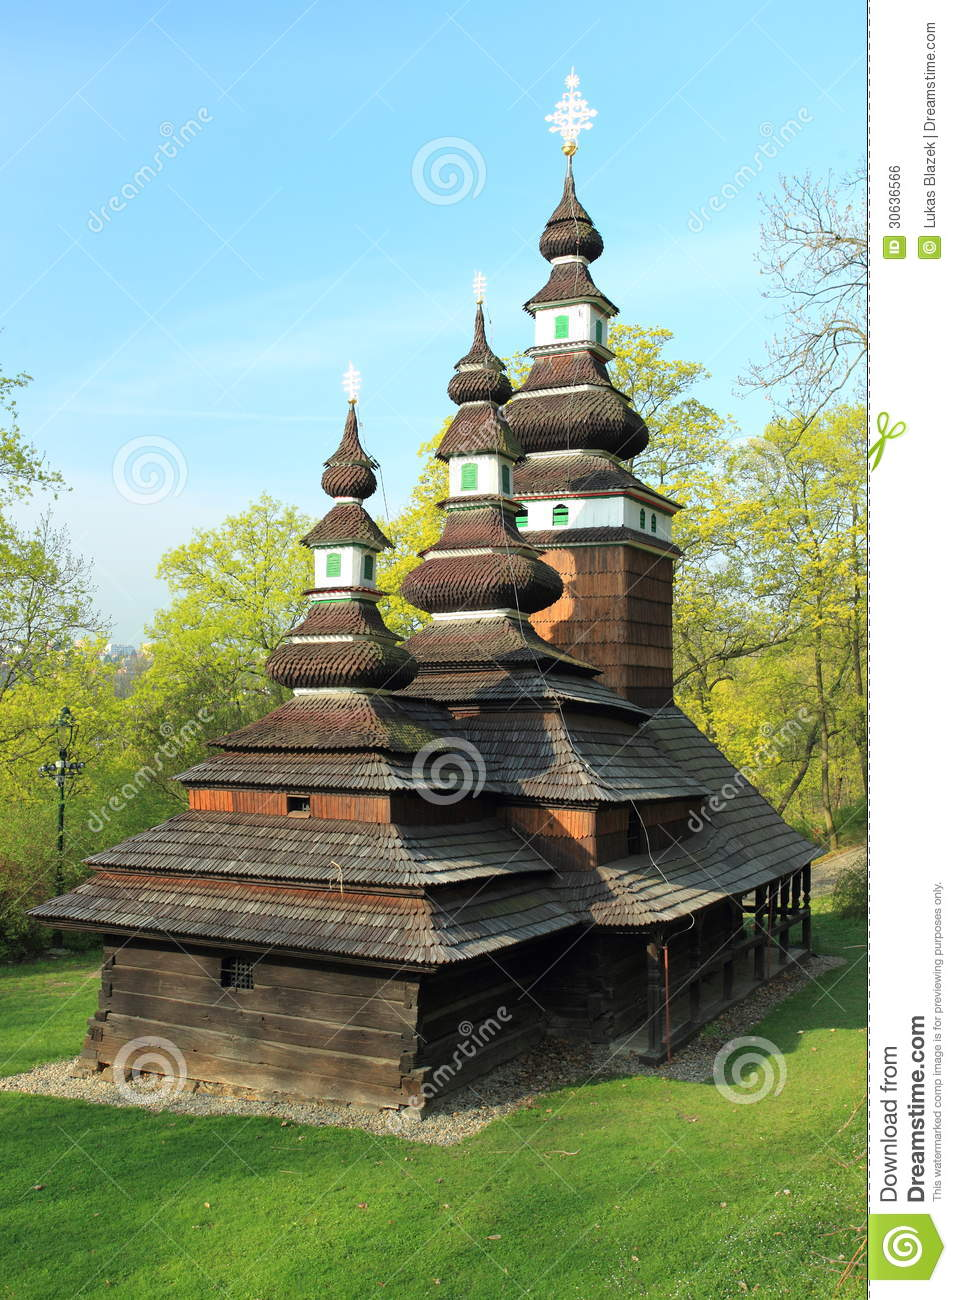 https://thumbs.dreamstime.com/z/orthodox-church-prague-st-michael-s-kinsky-gardens-czech-republic-30636566.jpg